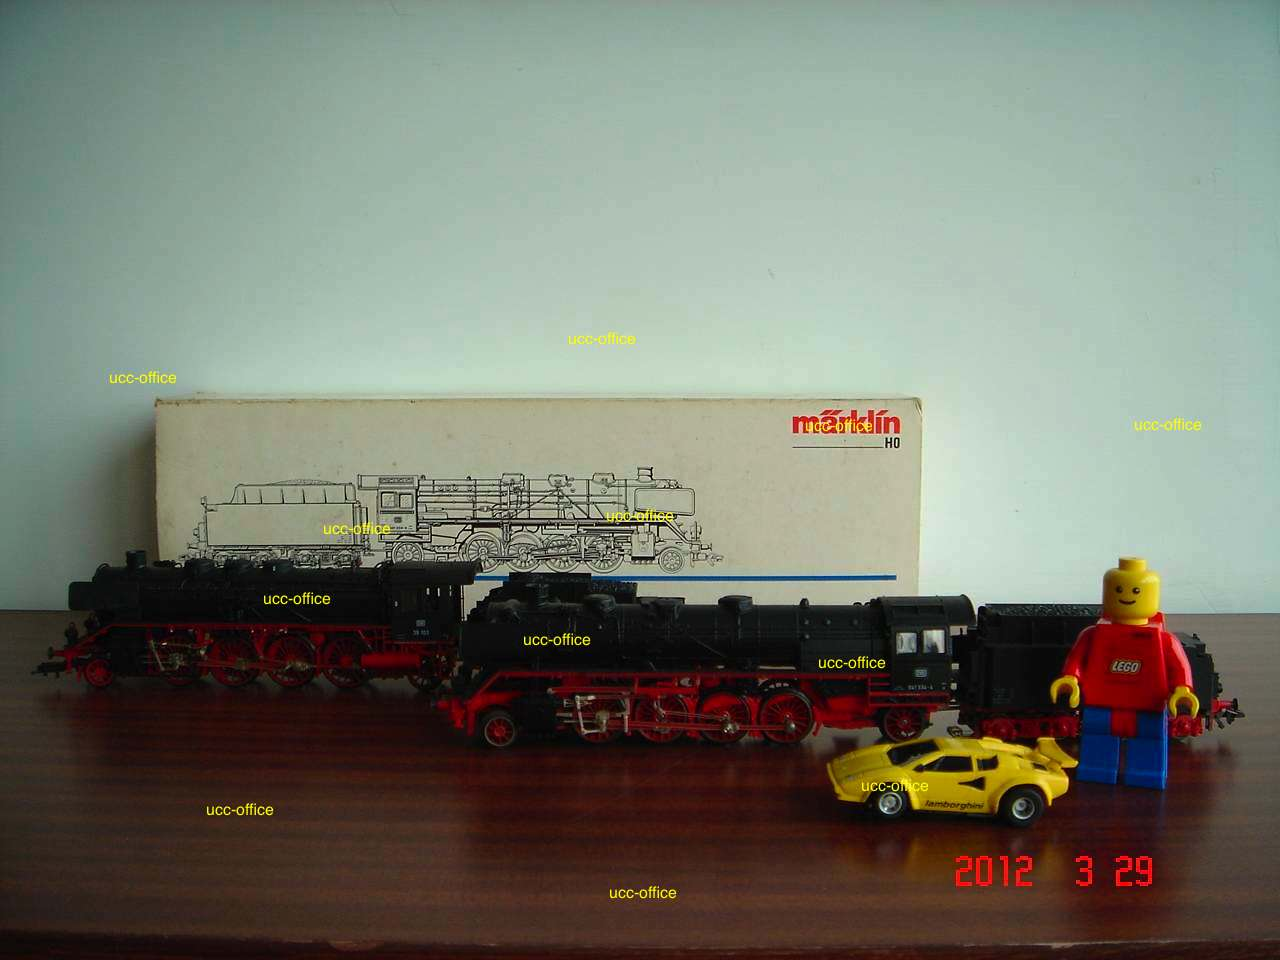 train_ucc-office-2012032901.jpg